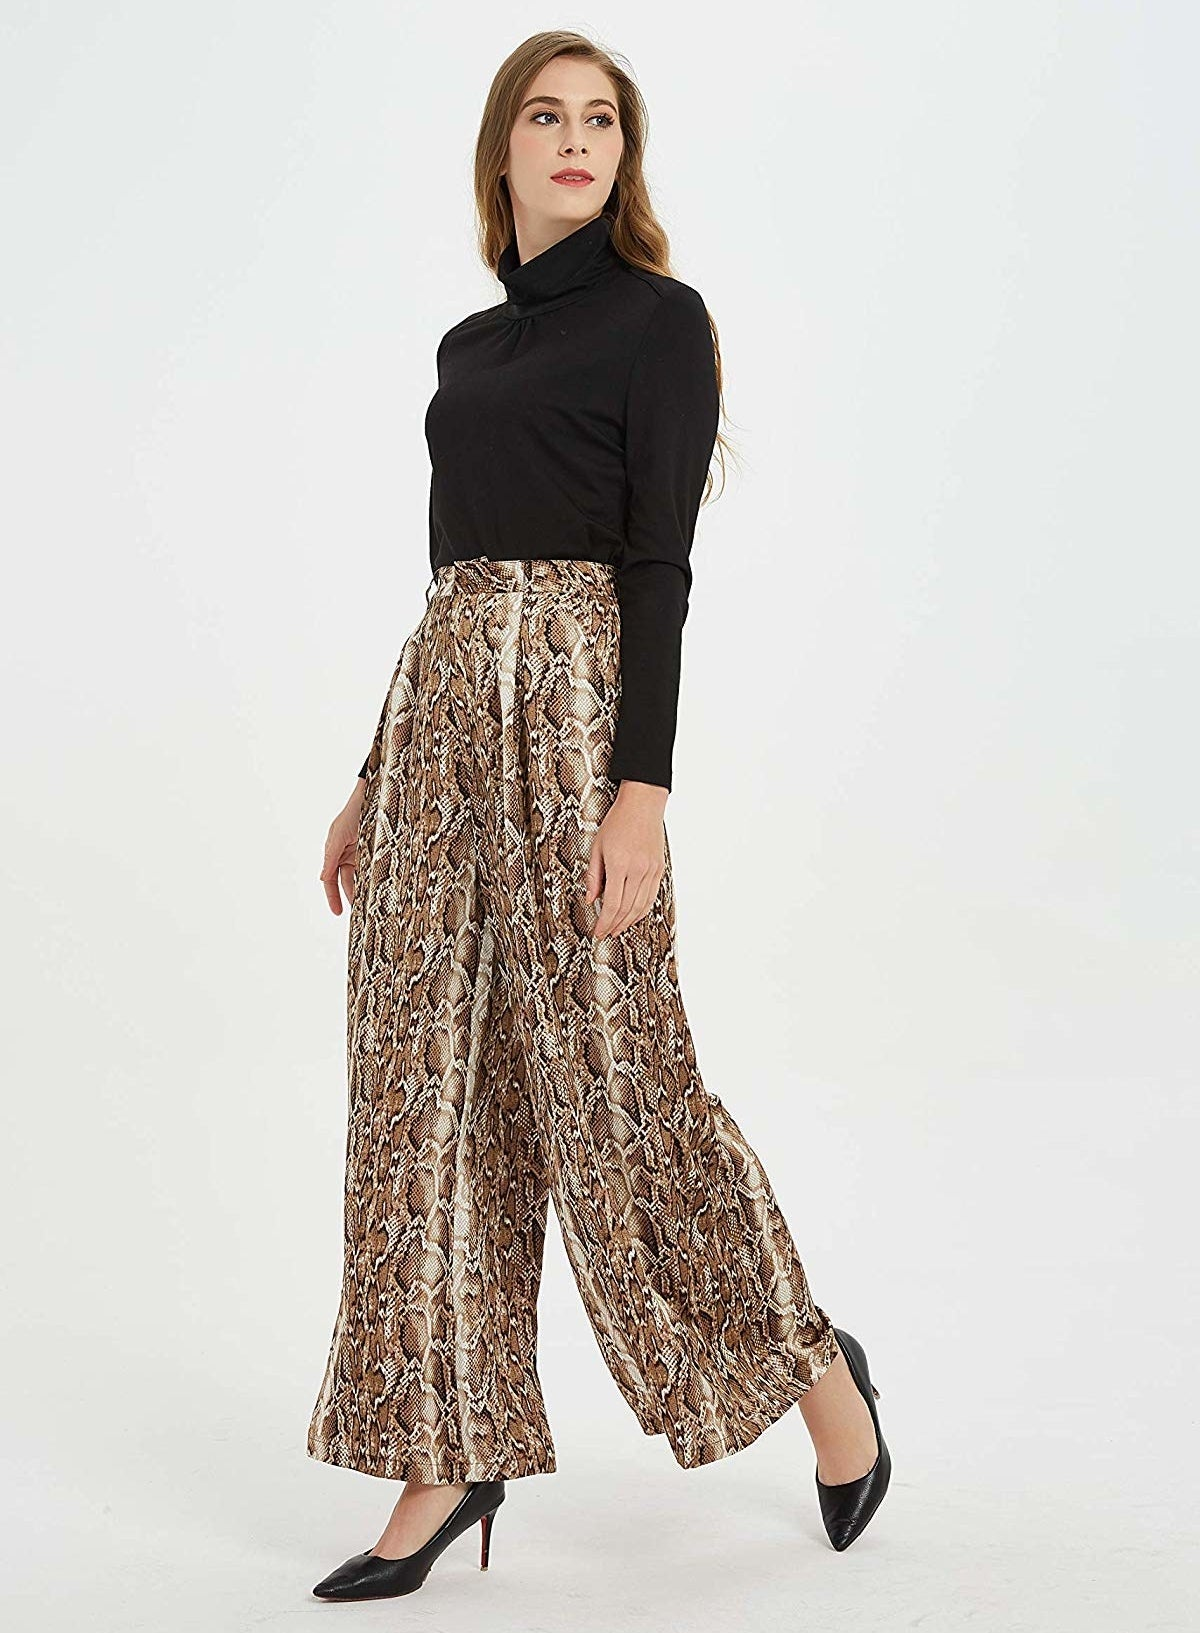 Model in the high-waisted palazzo pants in snakeskin